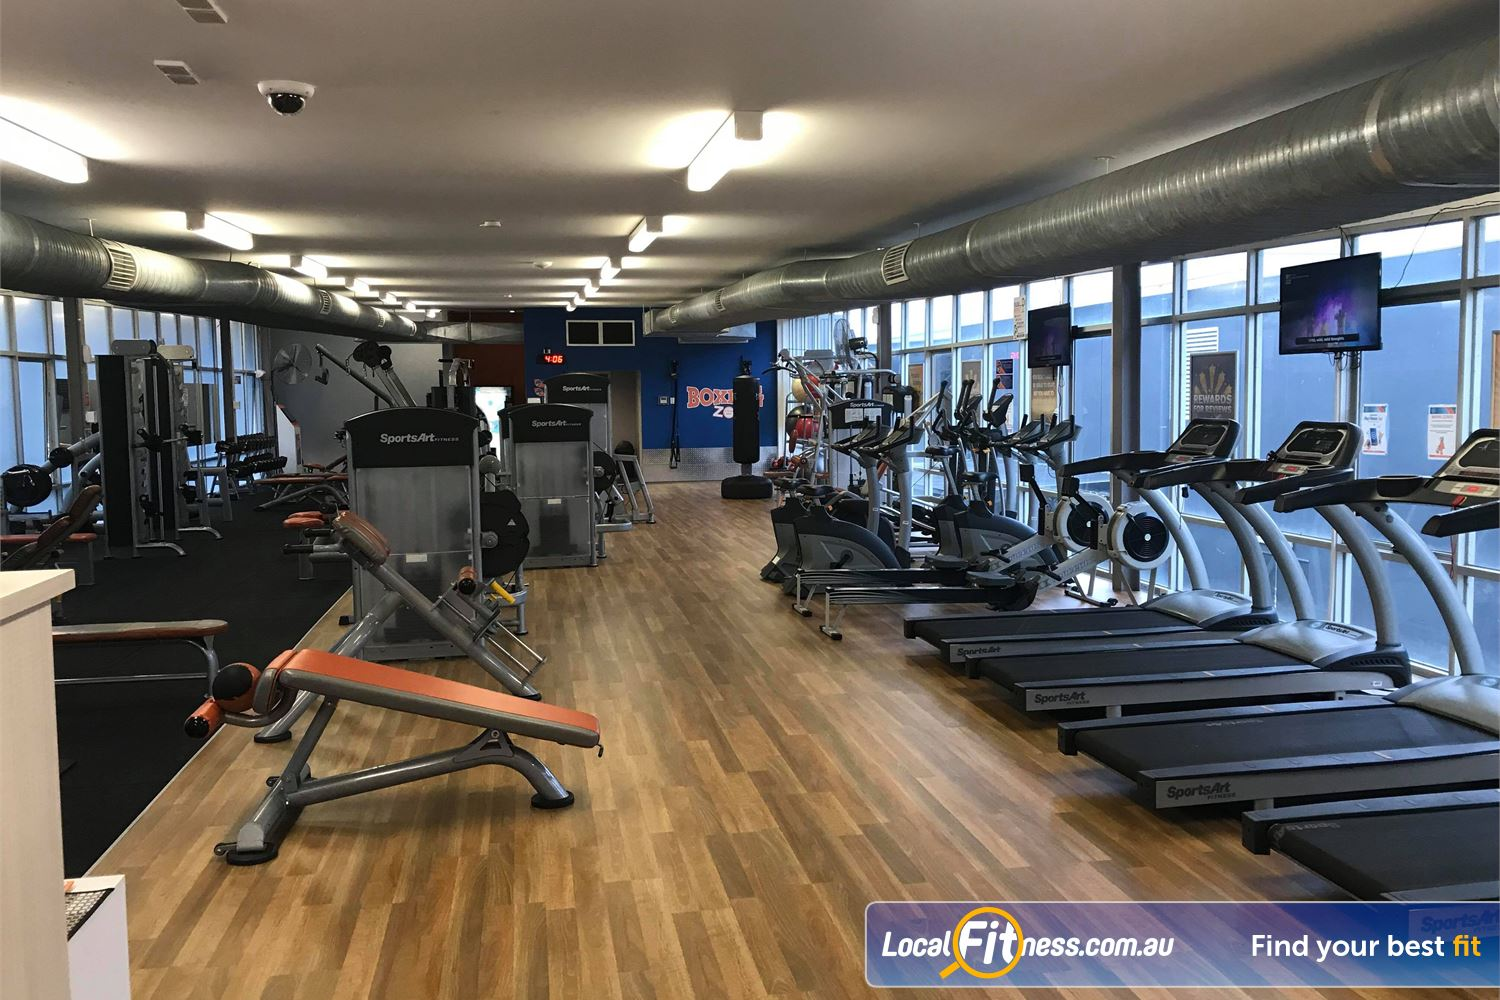 Plus Fitness 24/7 Near Oakleigh South Our Oakleigh gym includes state of the art equipment from SportsArt Fitness.